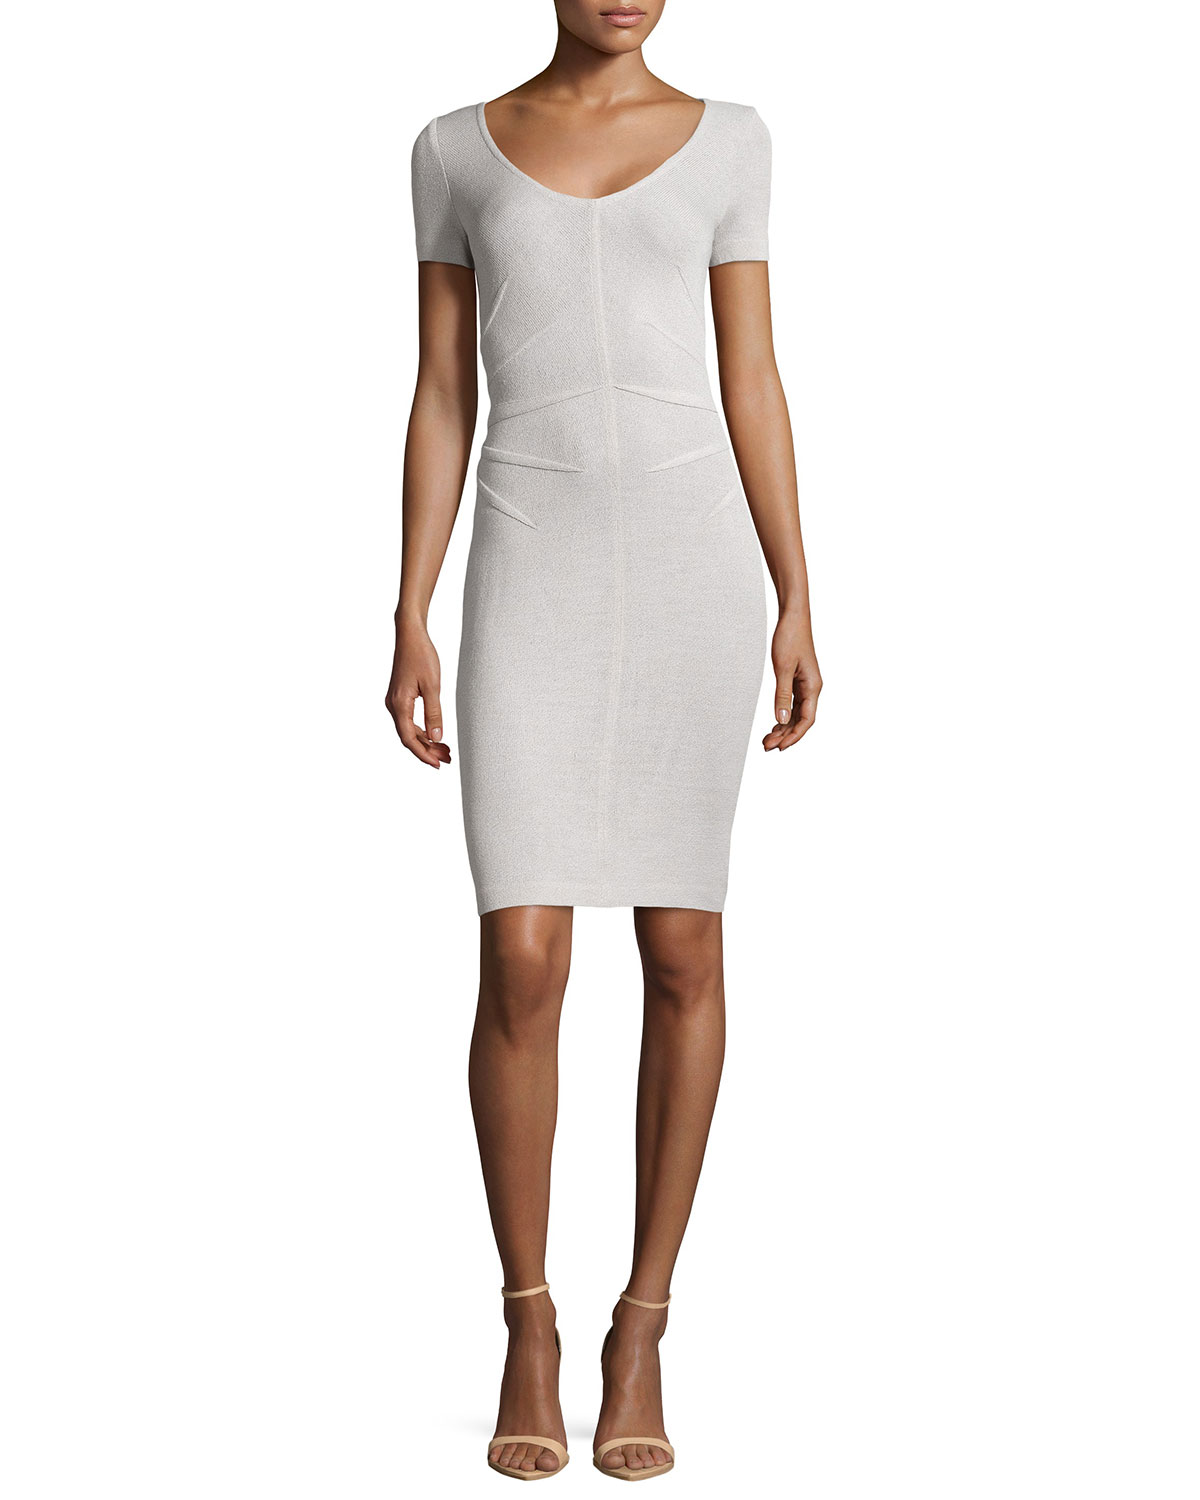 St. John - Women's Santana Knit Short-Sleeve Sheath Dress, Platinum - St. John - Platinum (14)